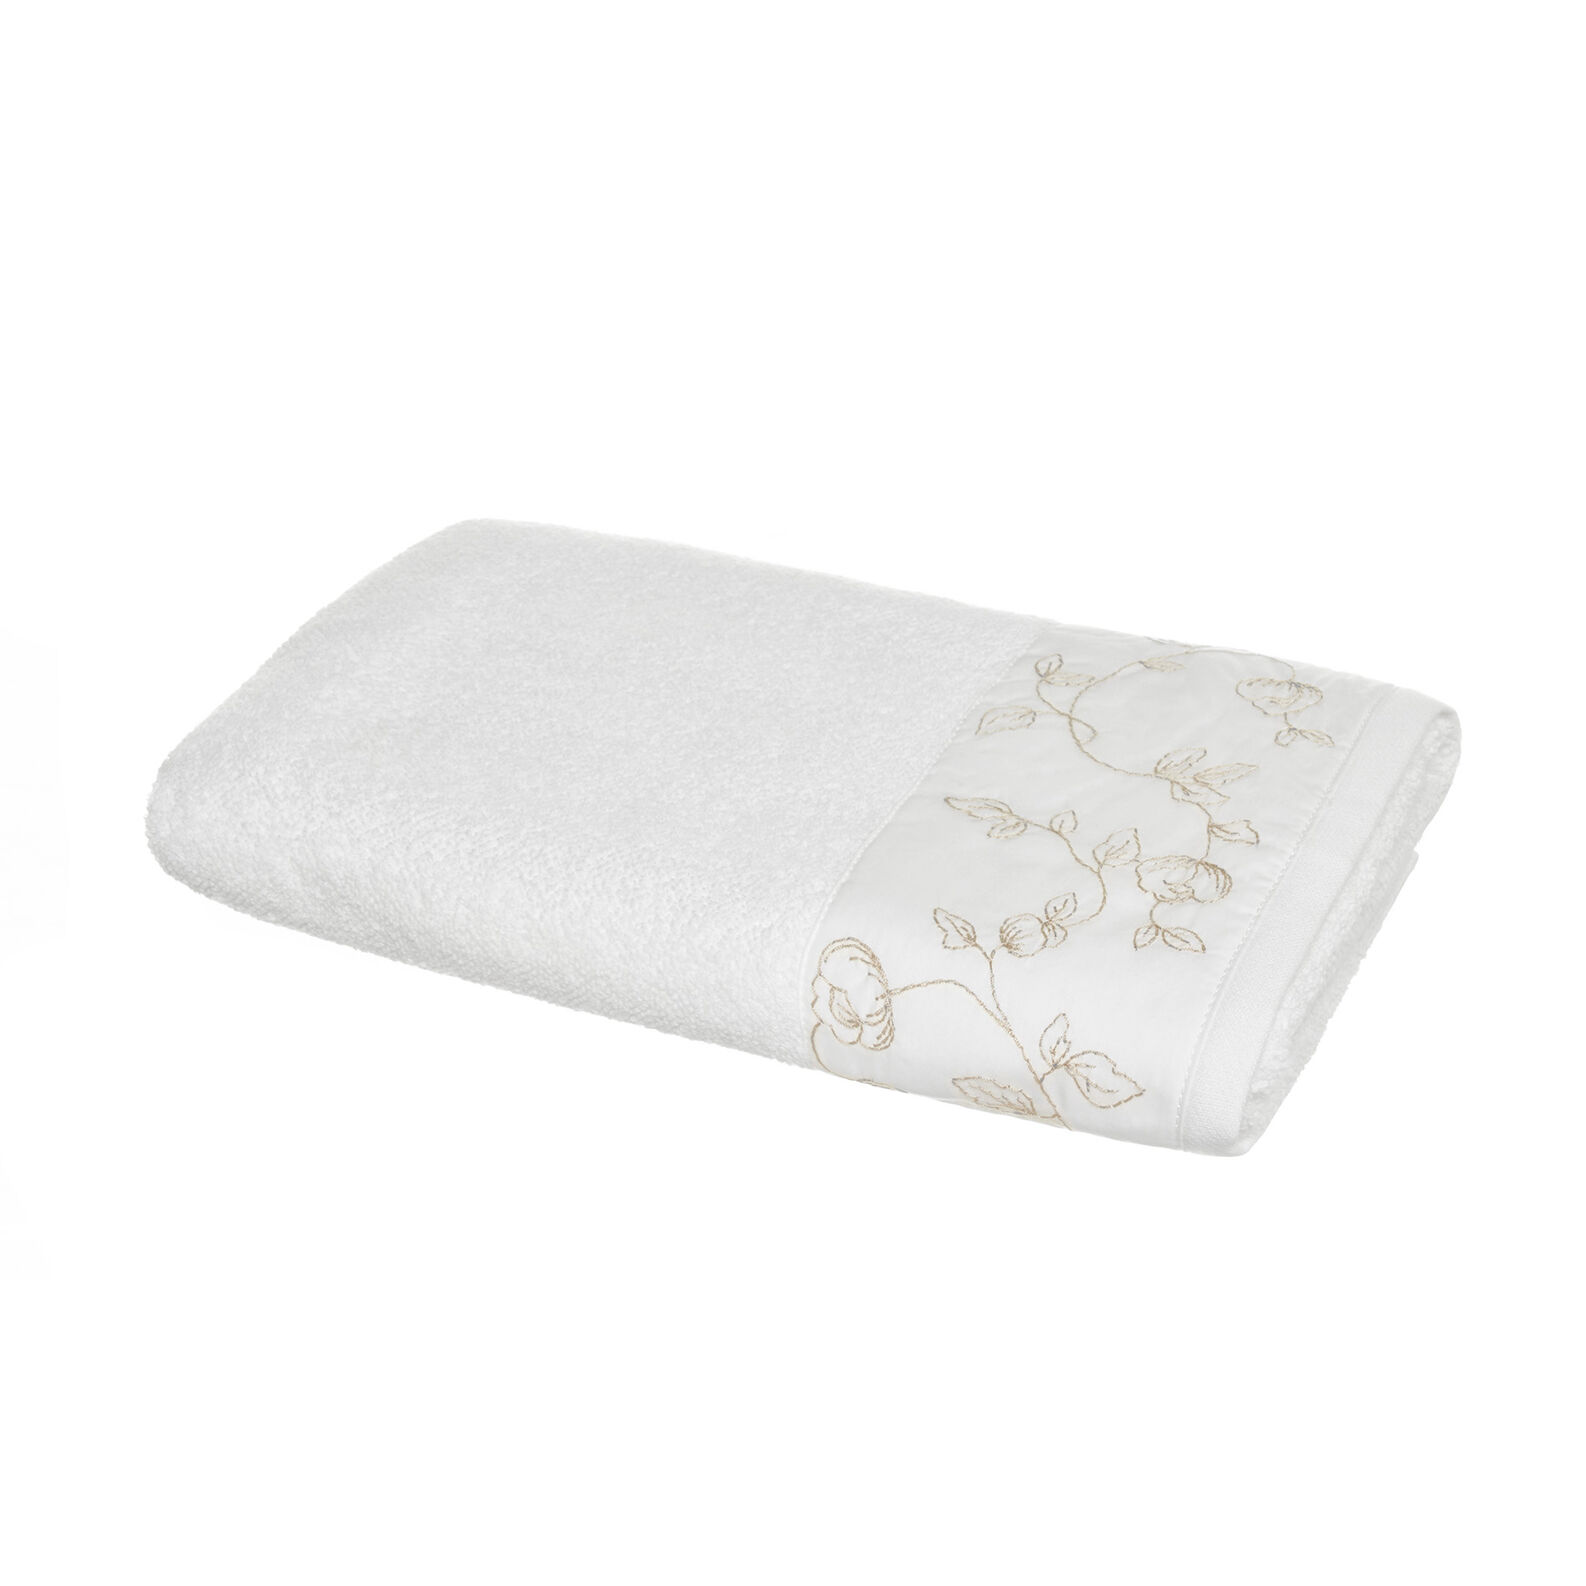 Portofino 100% cotton towel with percale edging